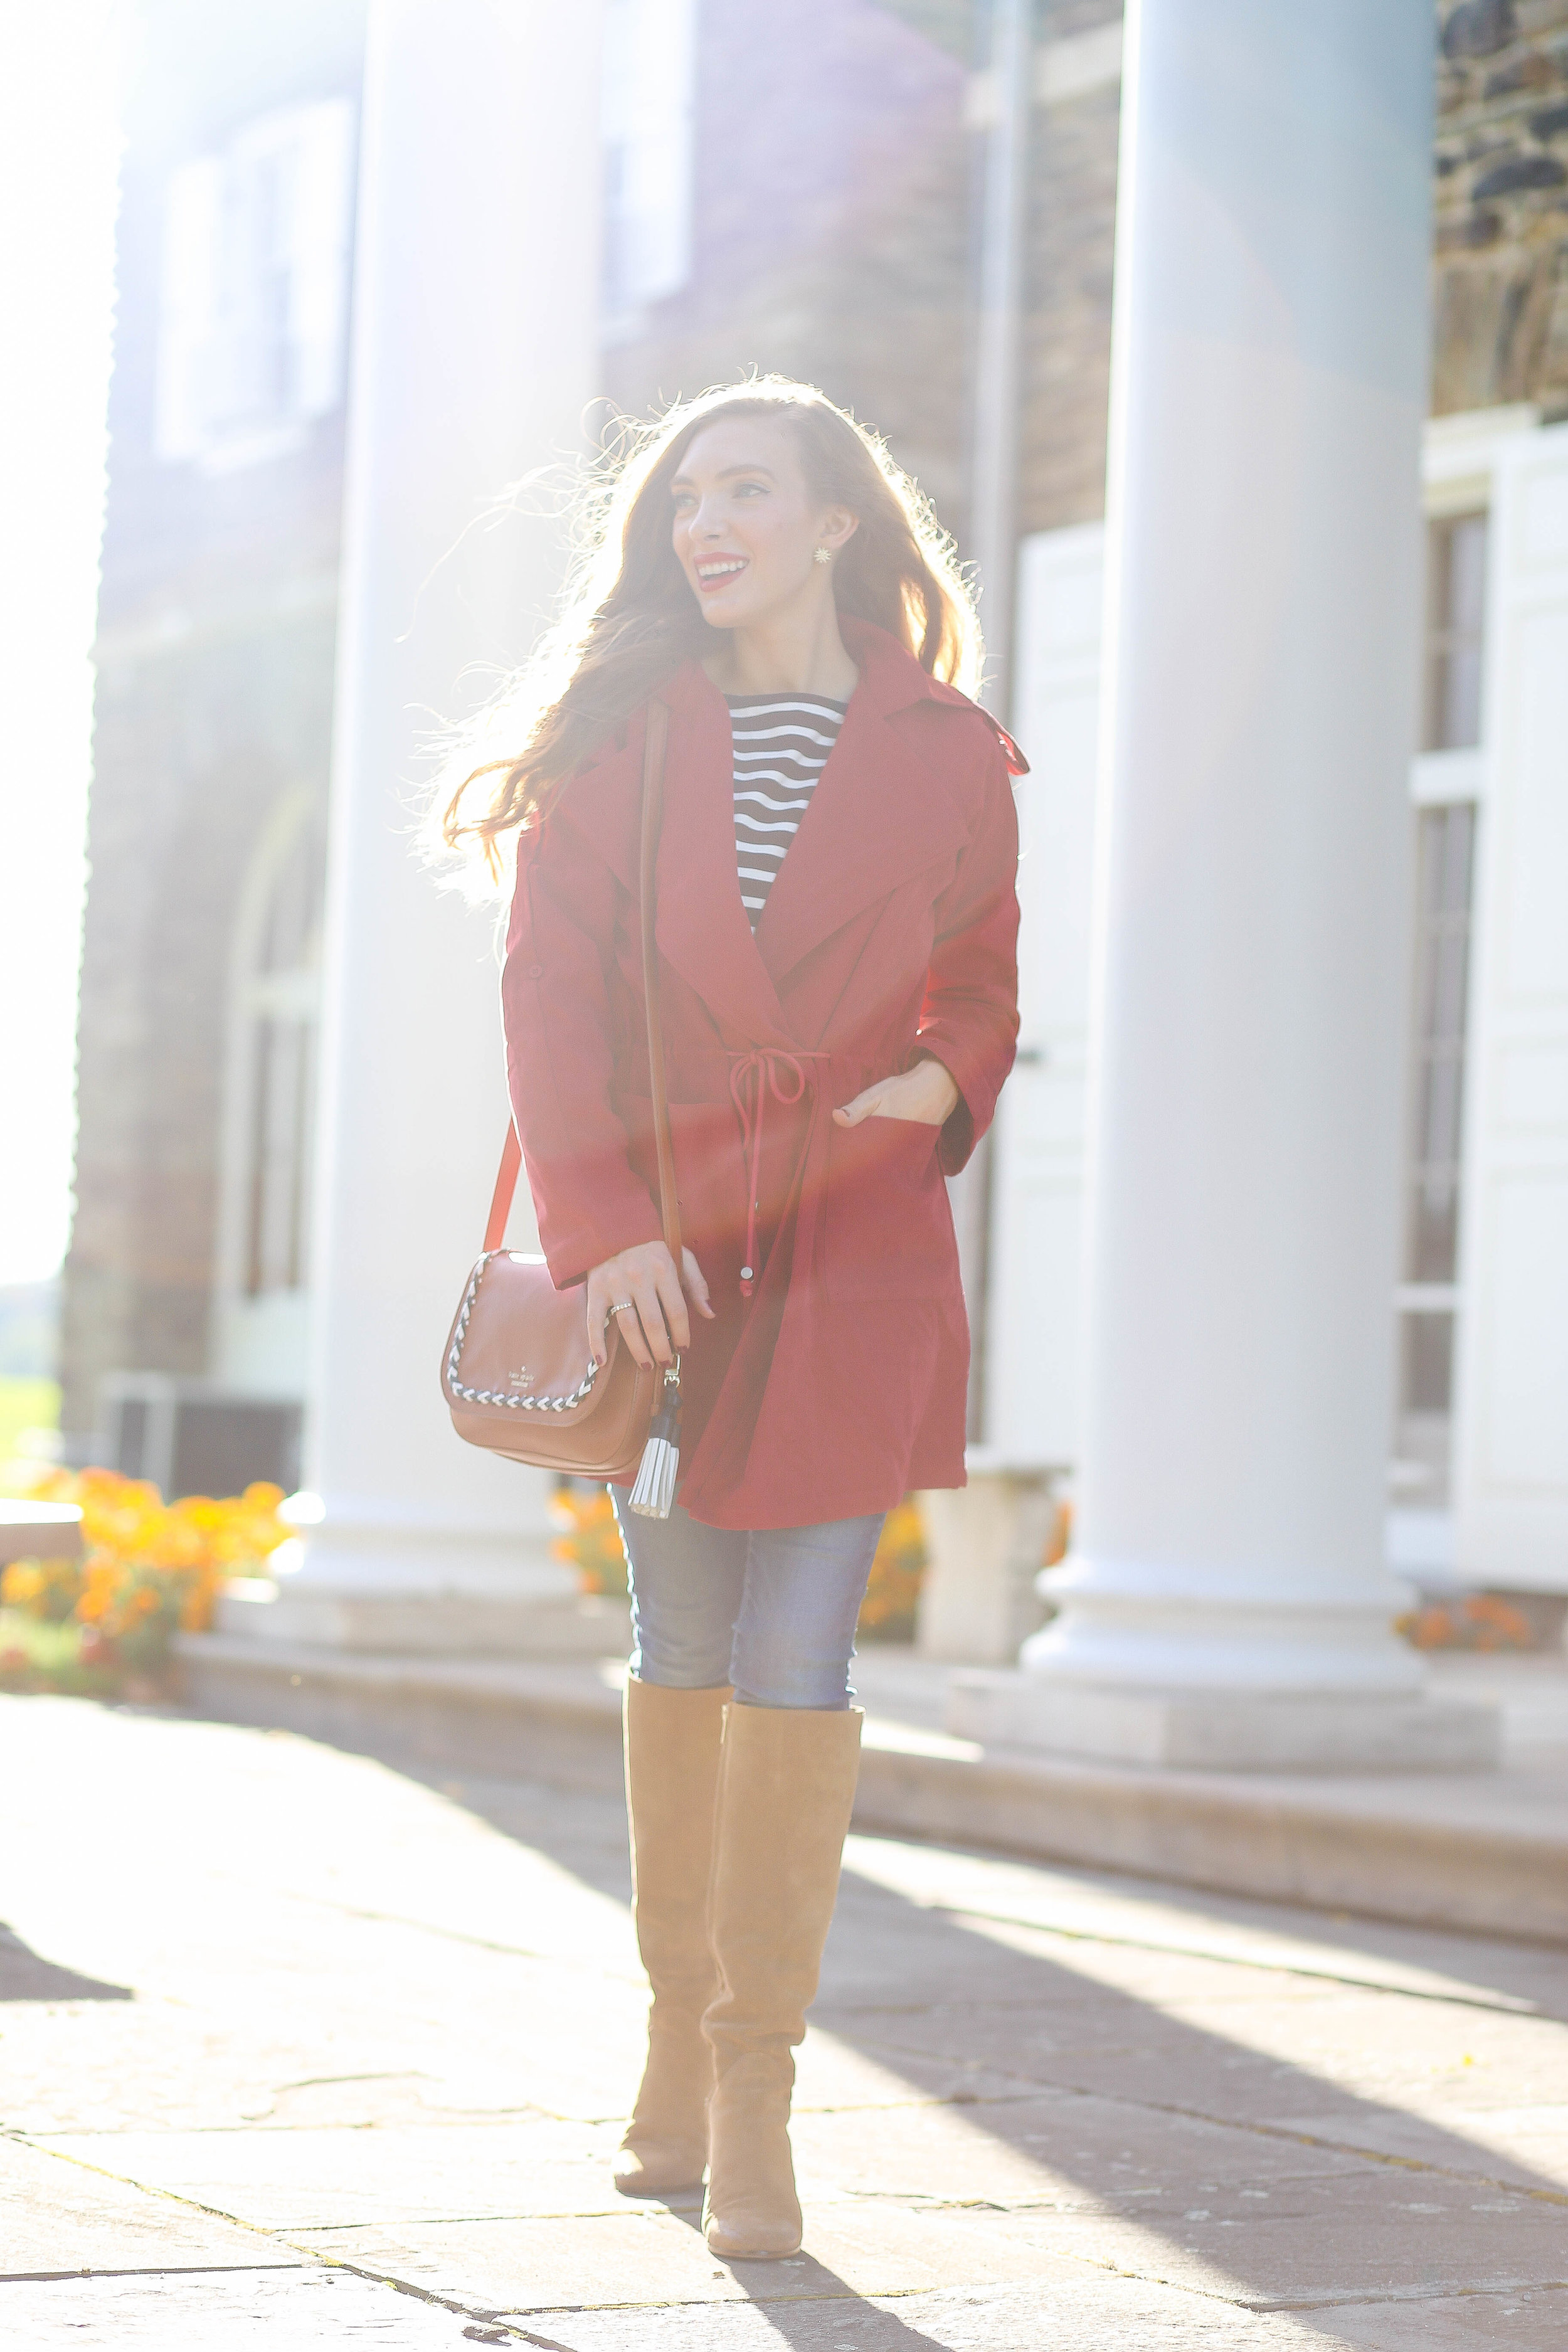 Red Jacket. Stripped Top. Tan Boots. Tan Cross Body Bag. Skinny Jeans.